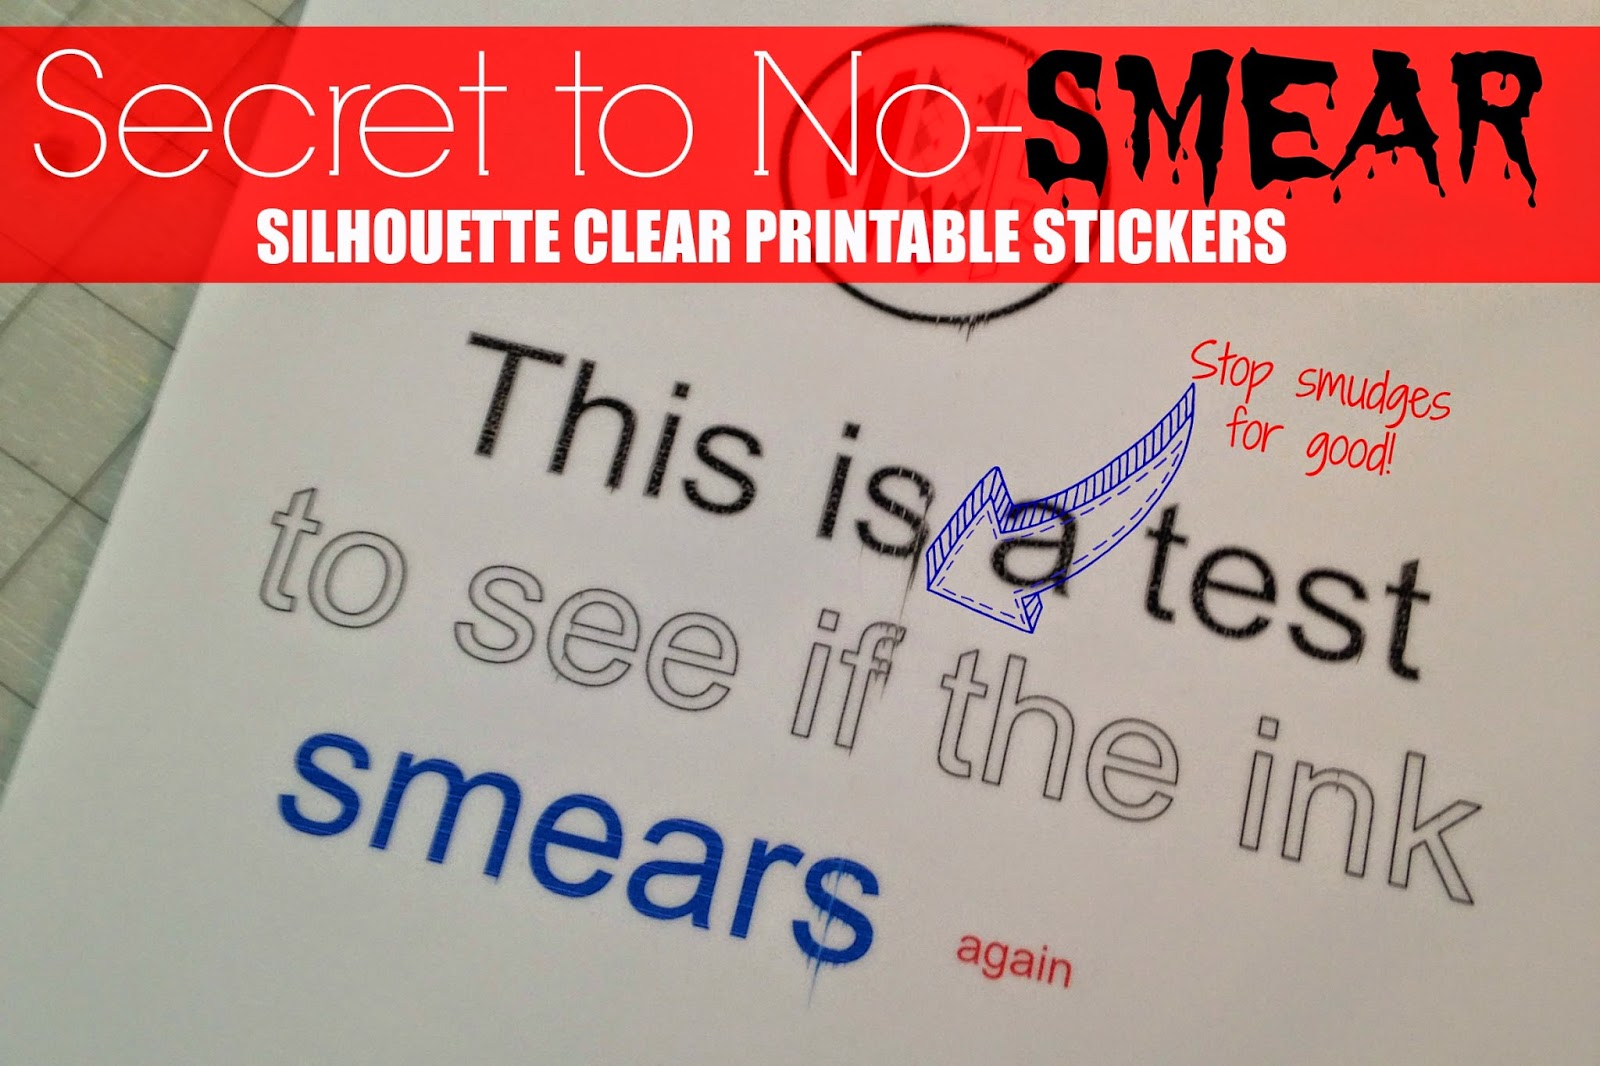 Prevent ink smearing, ink smearing, sticker paper, printable clear sticker paper